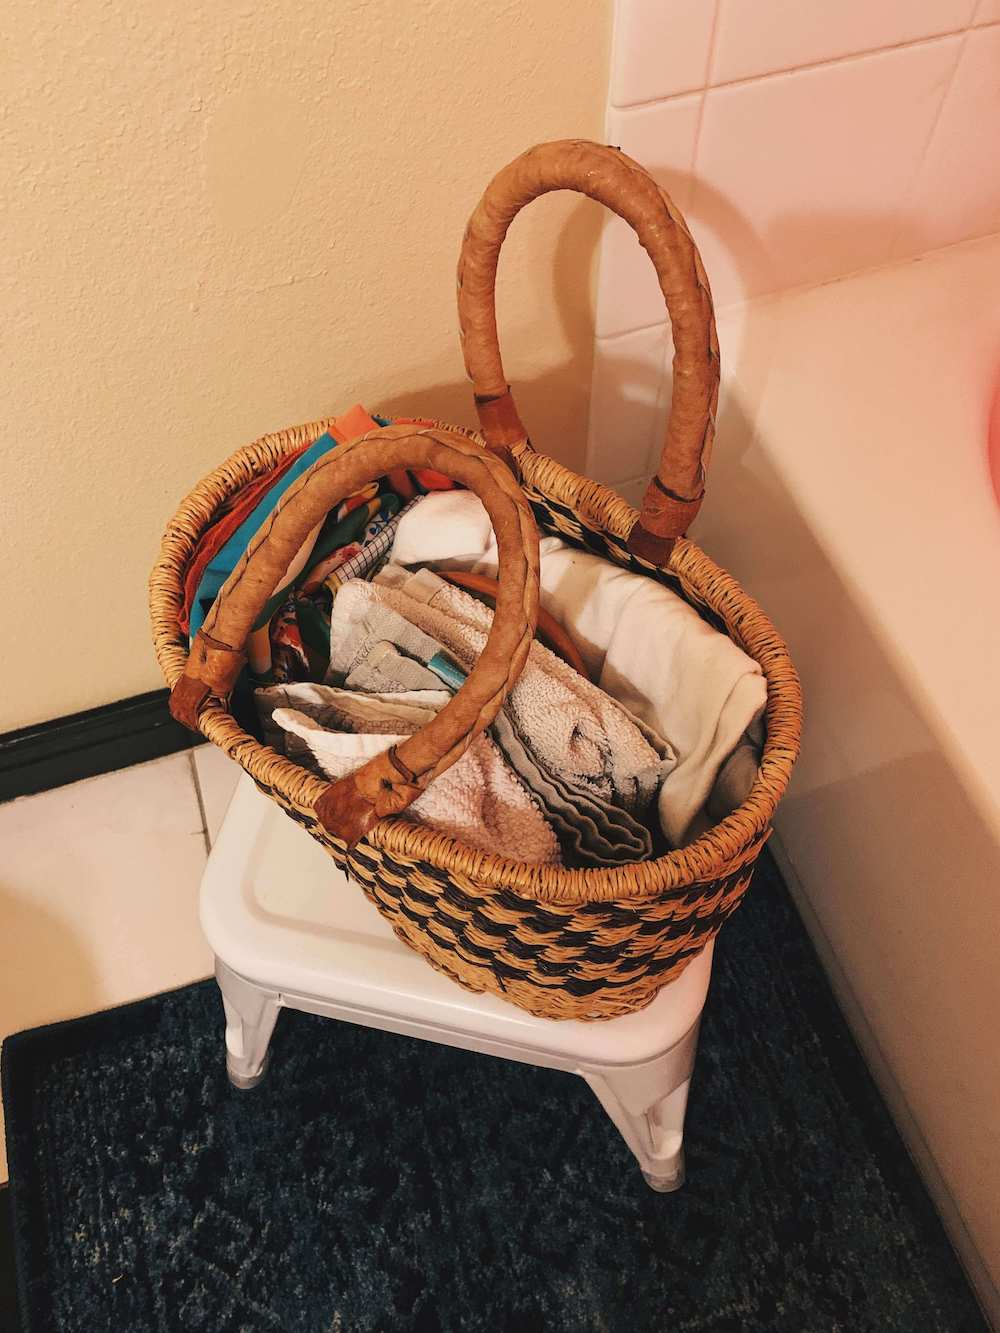 after shot of wicker basket on a white stool. the basket stores folded washcloths.